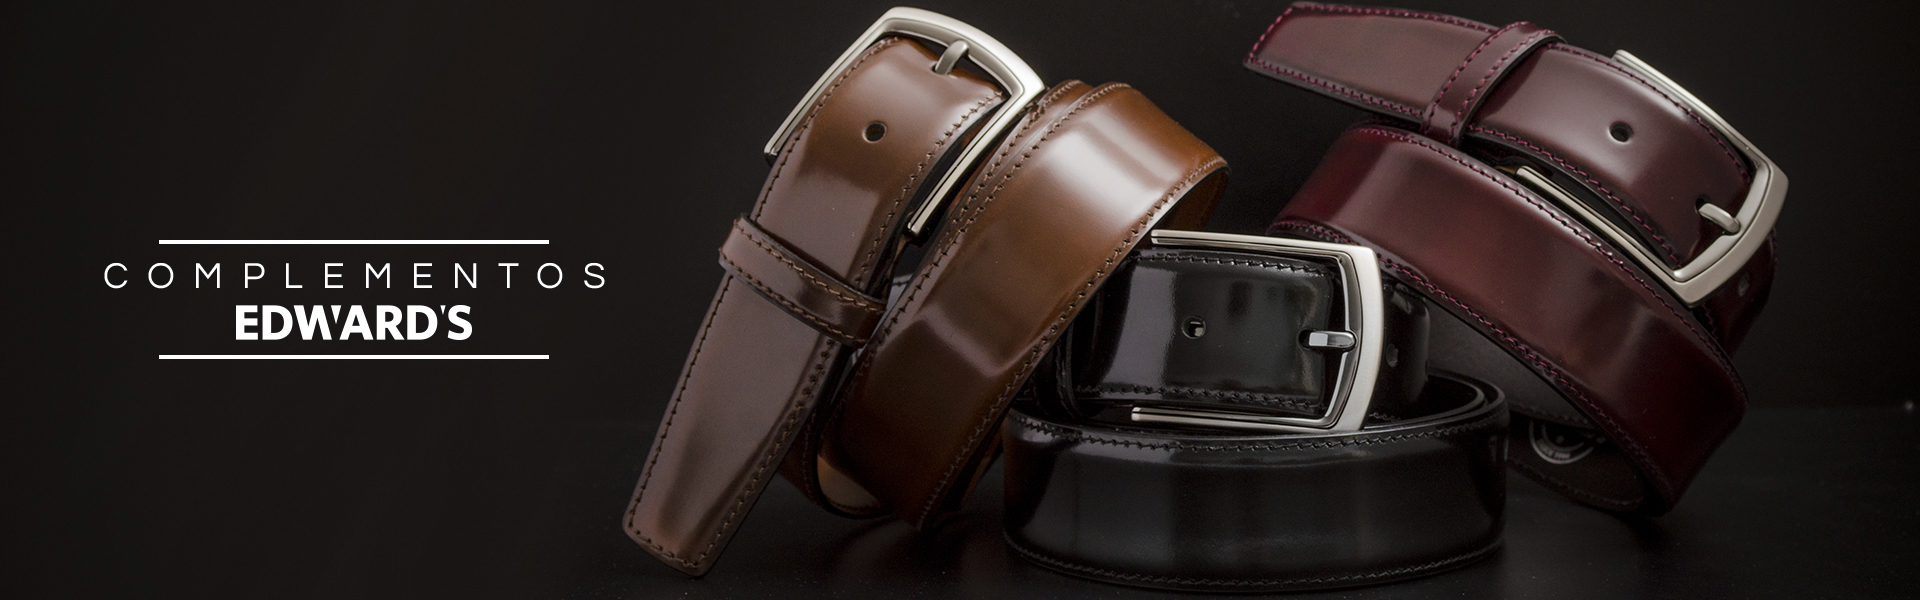 edwards-belt-leather